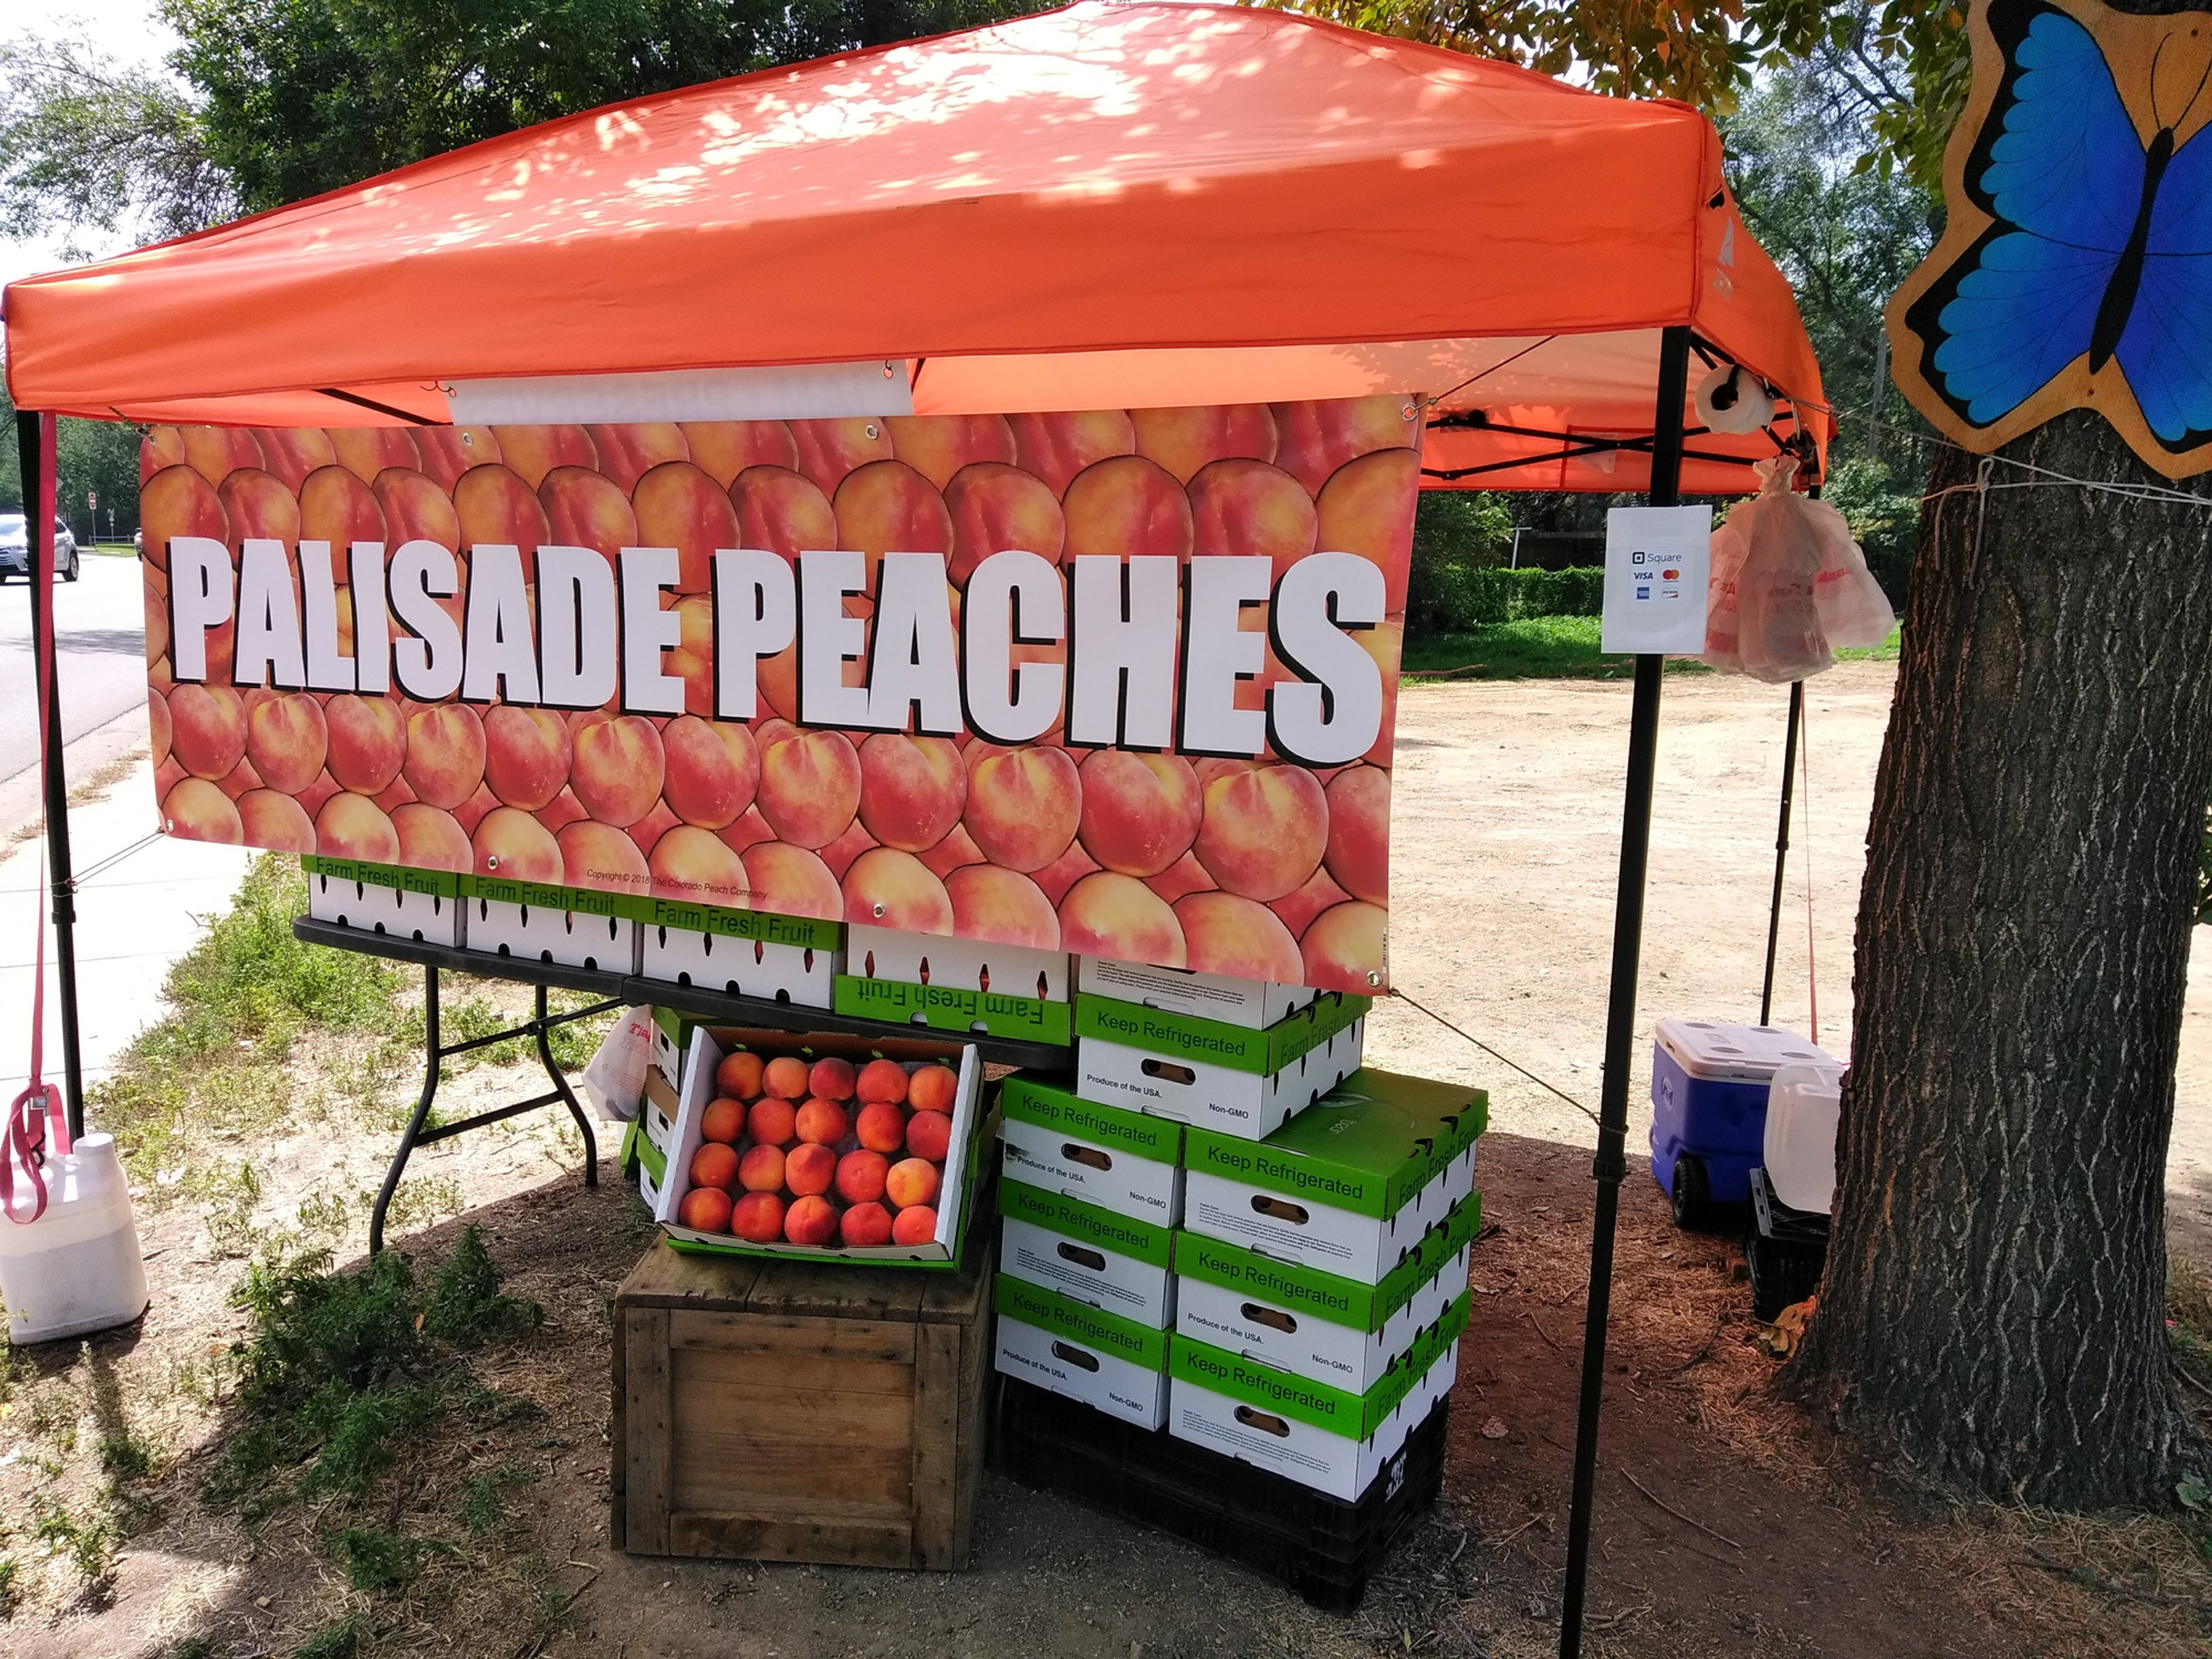 Palisade Peaches Fort Collins 2019 | The Colorado Peach Company